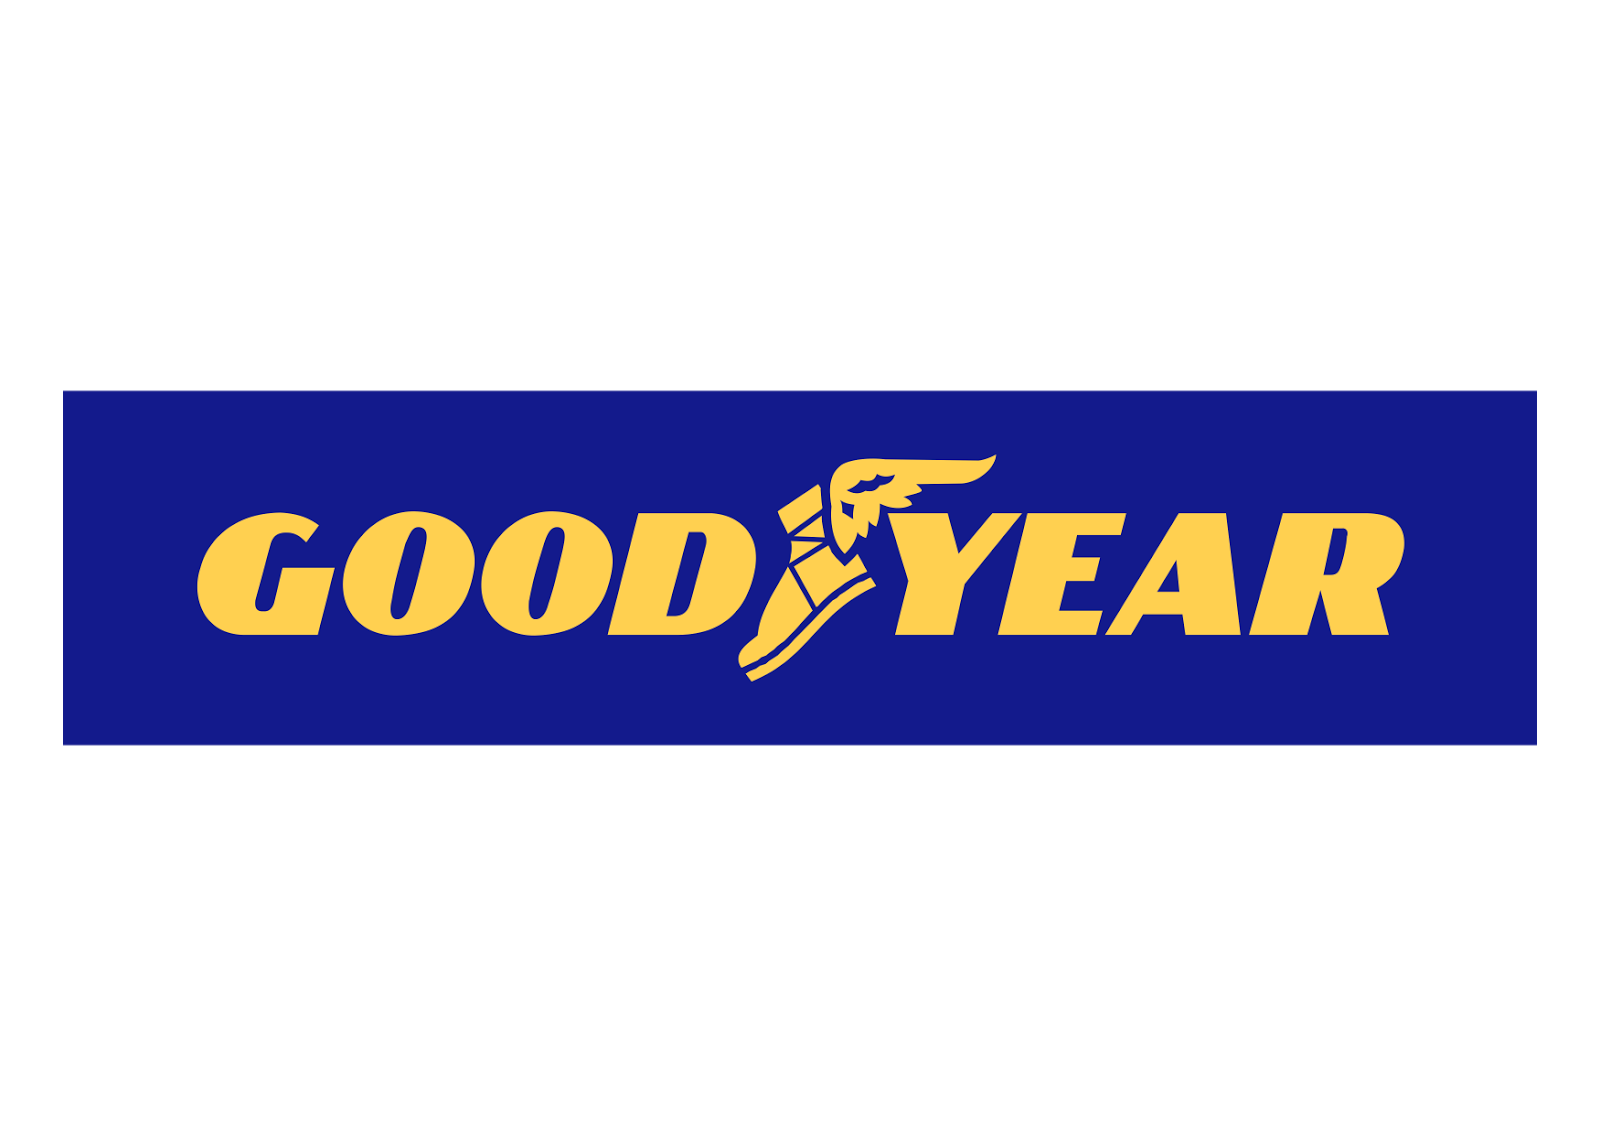 goodyear online dating Online goodyear dating service the only 100% free online dating site for dating, love, relationships and friendship register here and chat with other goodyear singles.